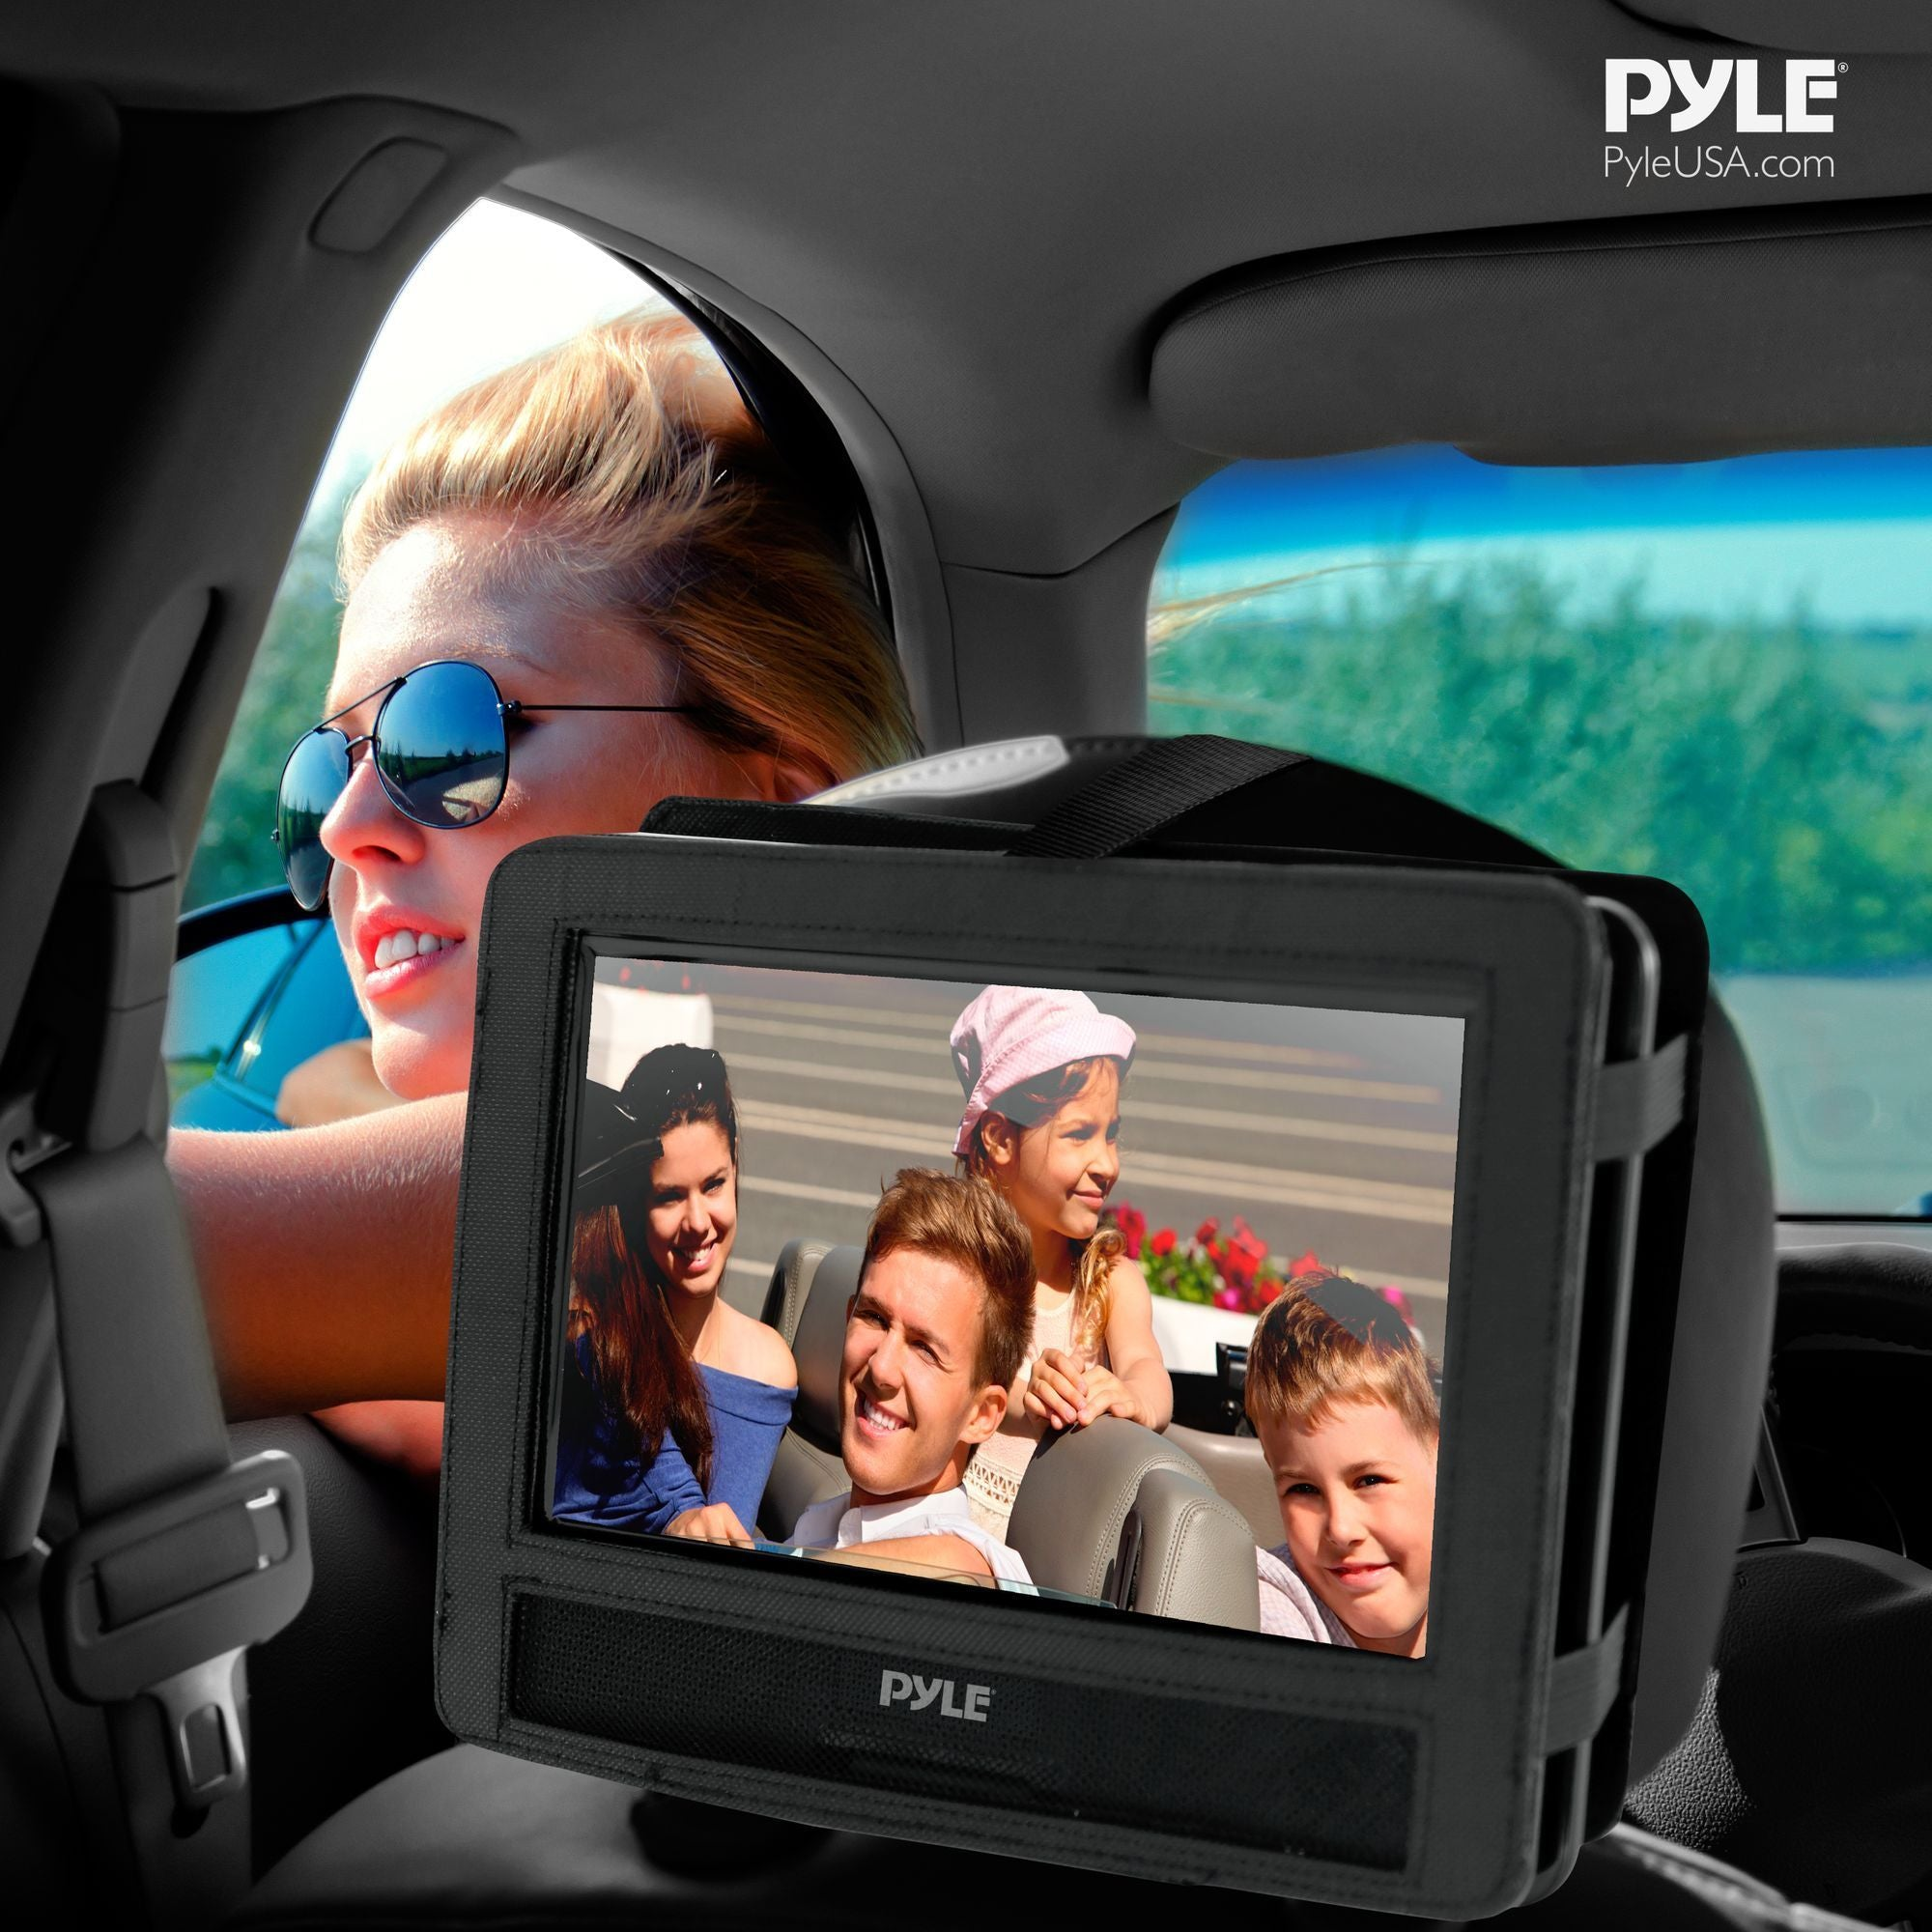 PyleHome 9'' Widescreen High Resolution Portable Monitor w/ Built-In DVD, MP3, MP4 Players, USB Port & SD Card Slot Readers (PDH9)